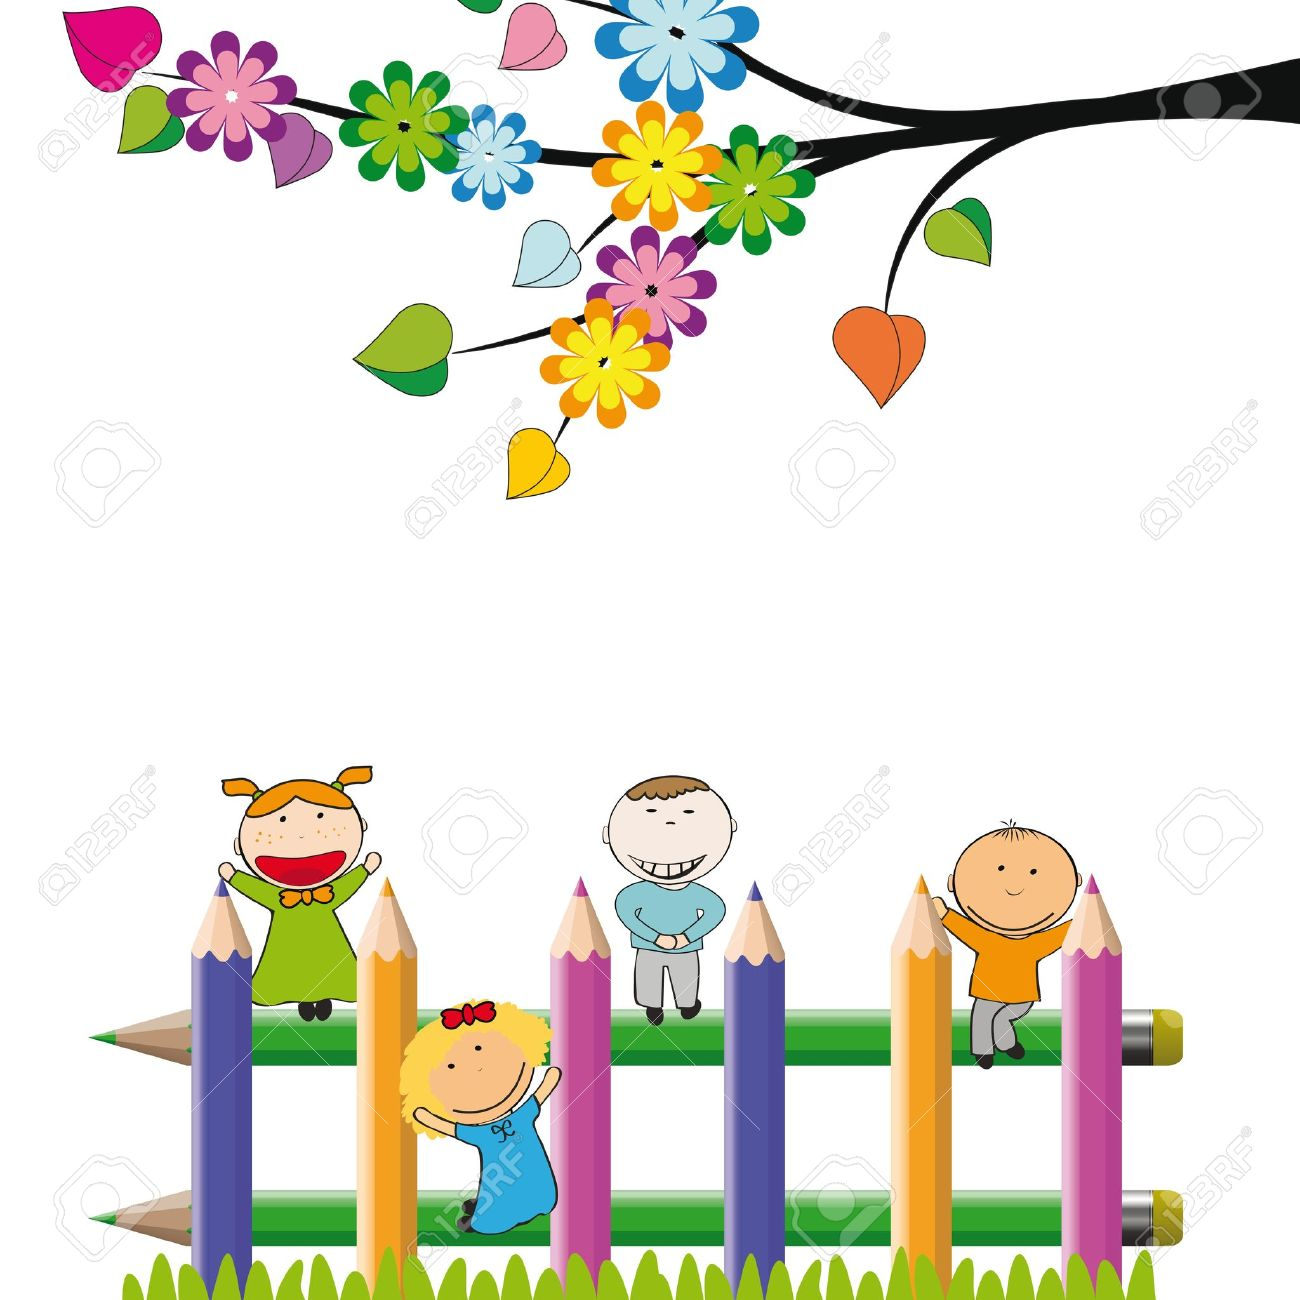 Small and happy kids on colorful fence Stock Vector - 13535810